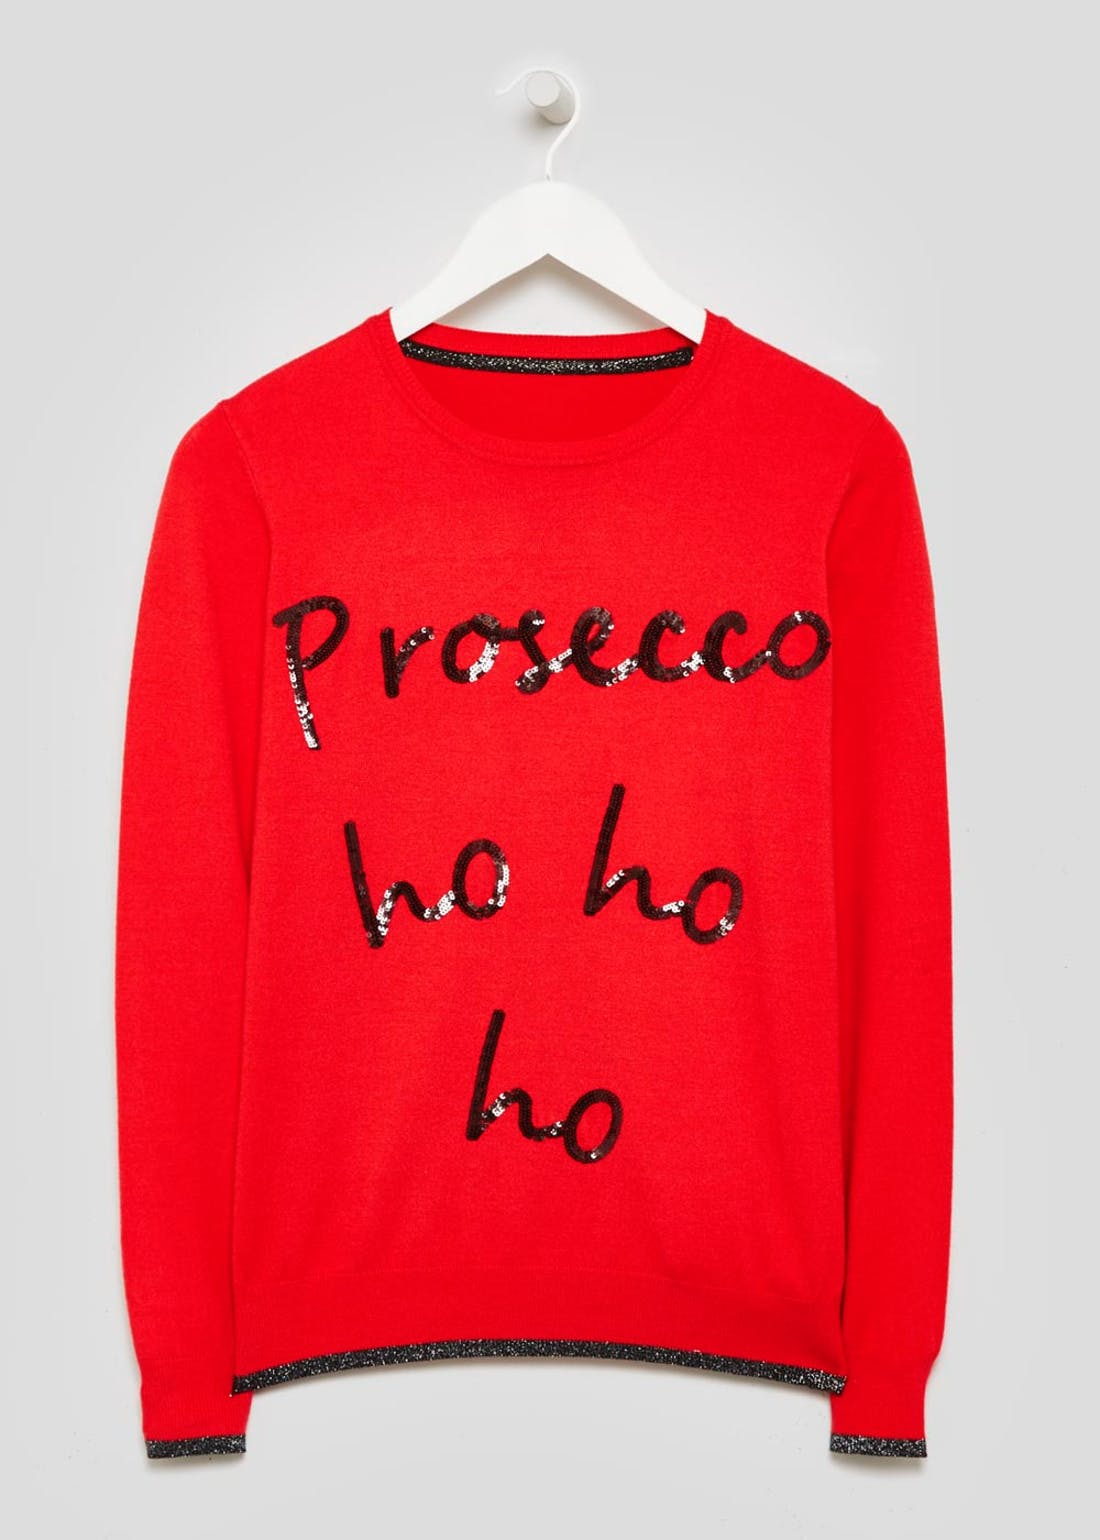 Prosecco Novelty Christmas Jumper